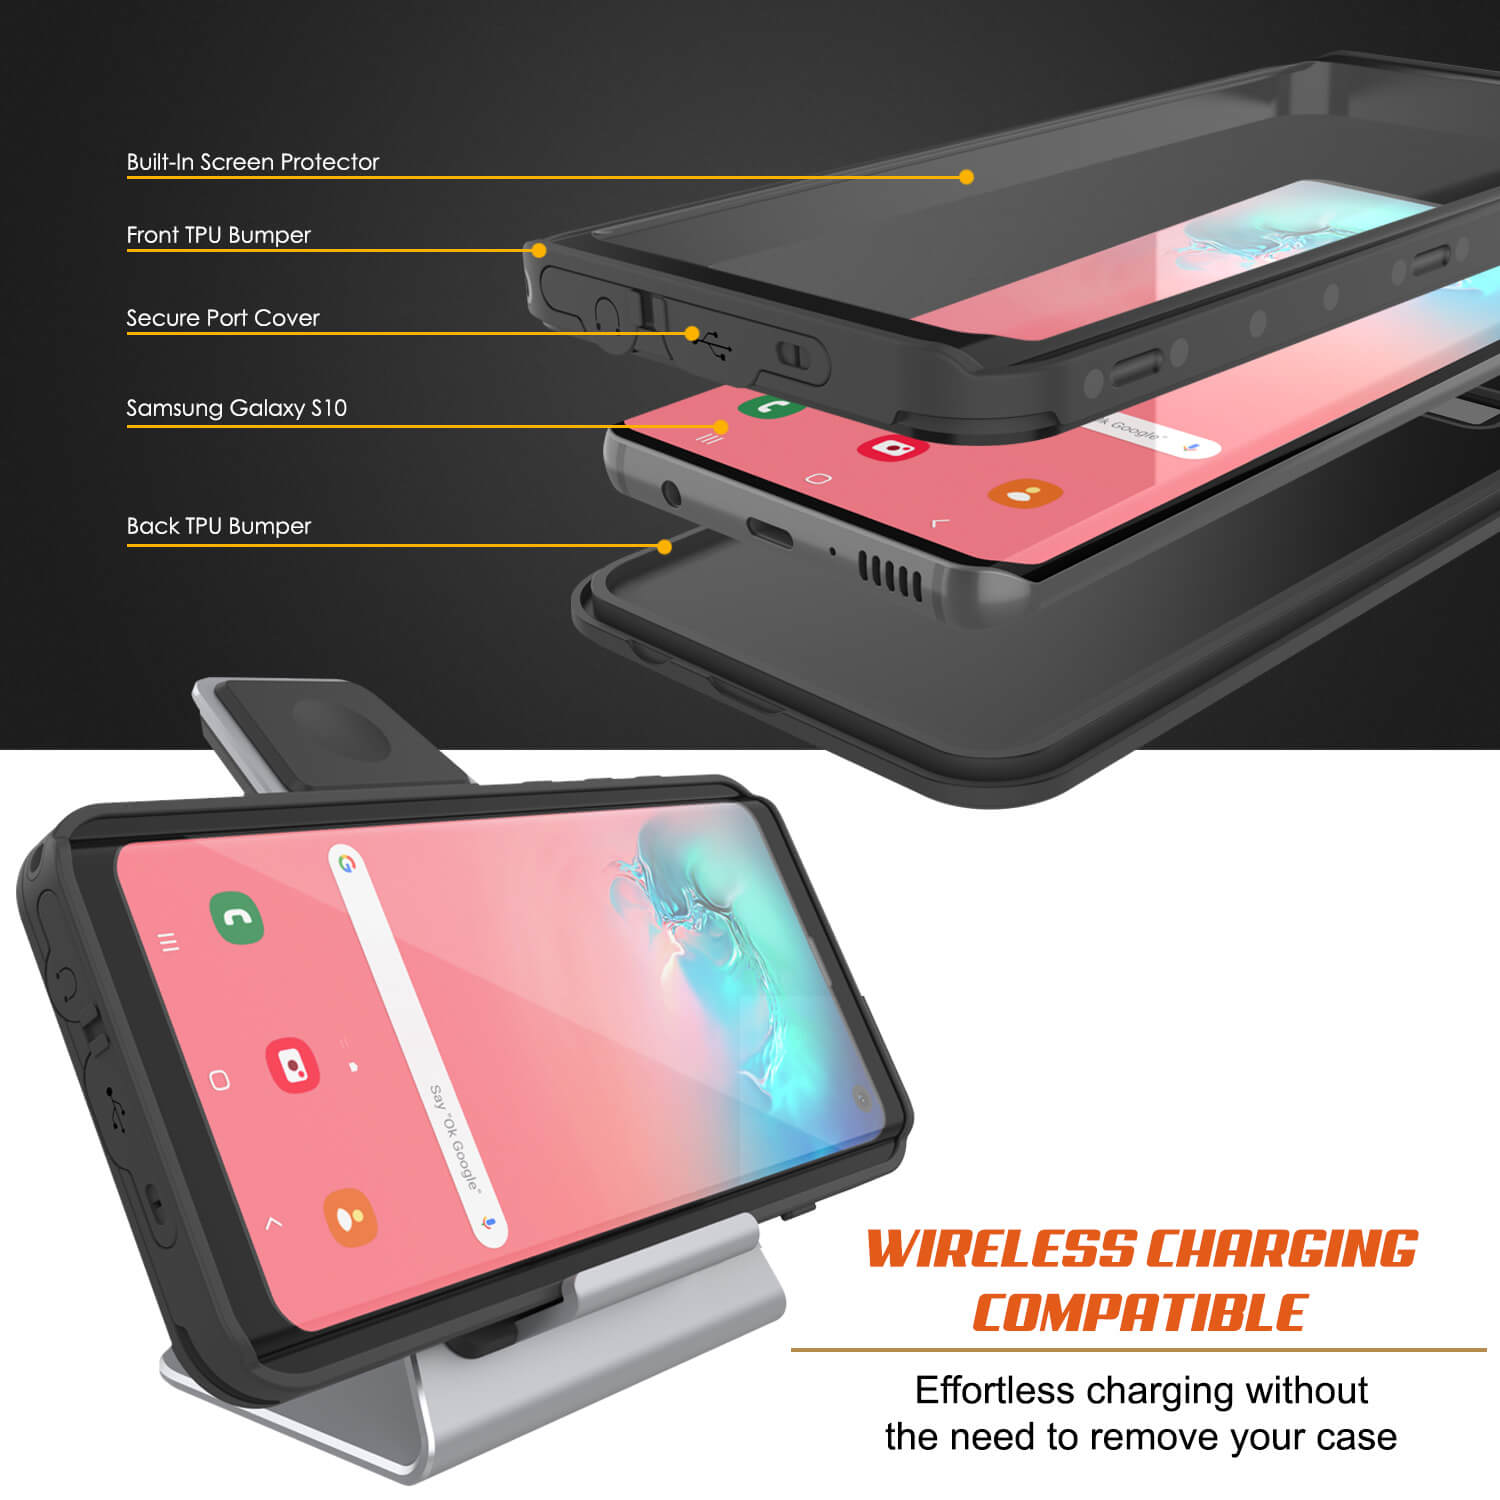 Galaxy S10 Waterproof Case PunkCase StudStar Black Thin 6.6ft Underwater IP68 Shock/Snow Proof